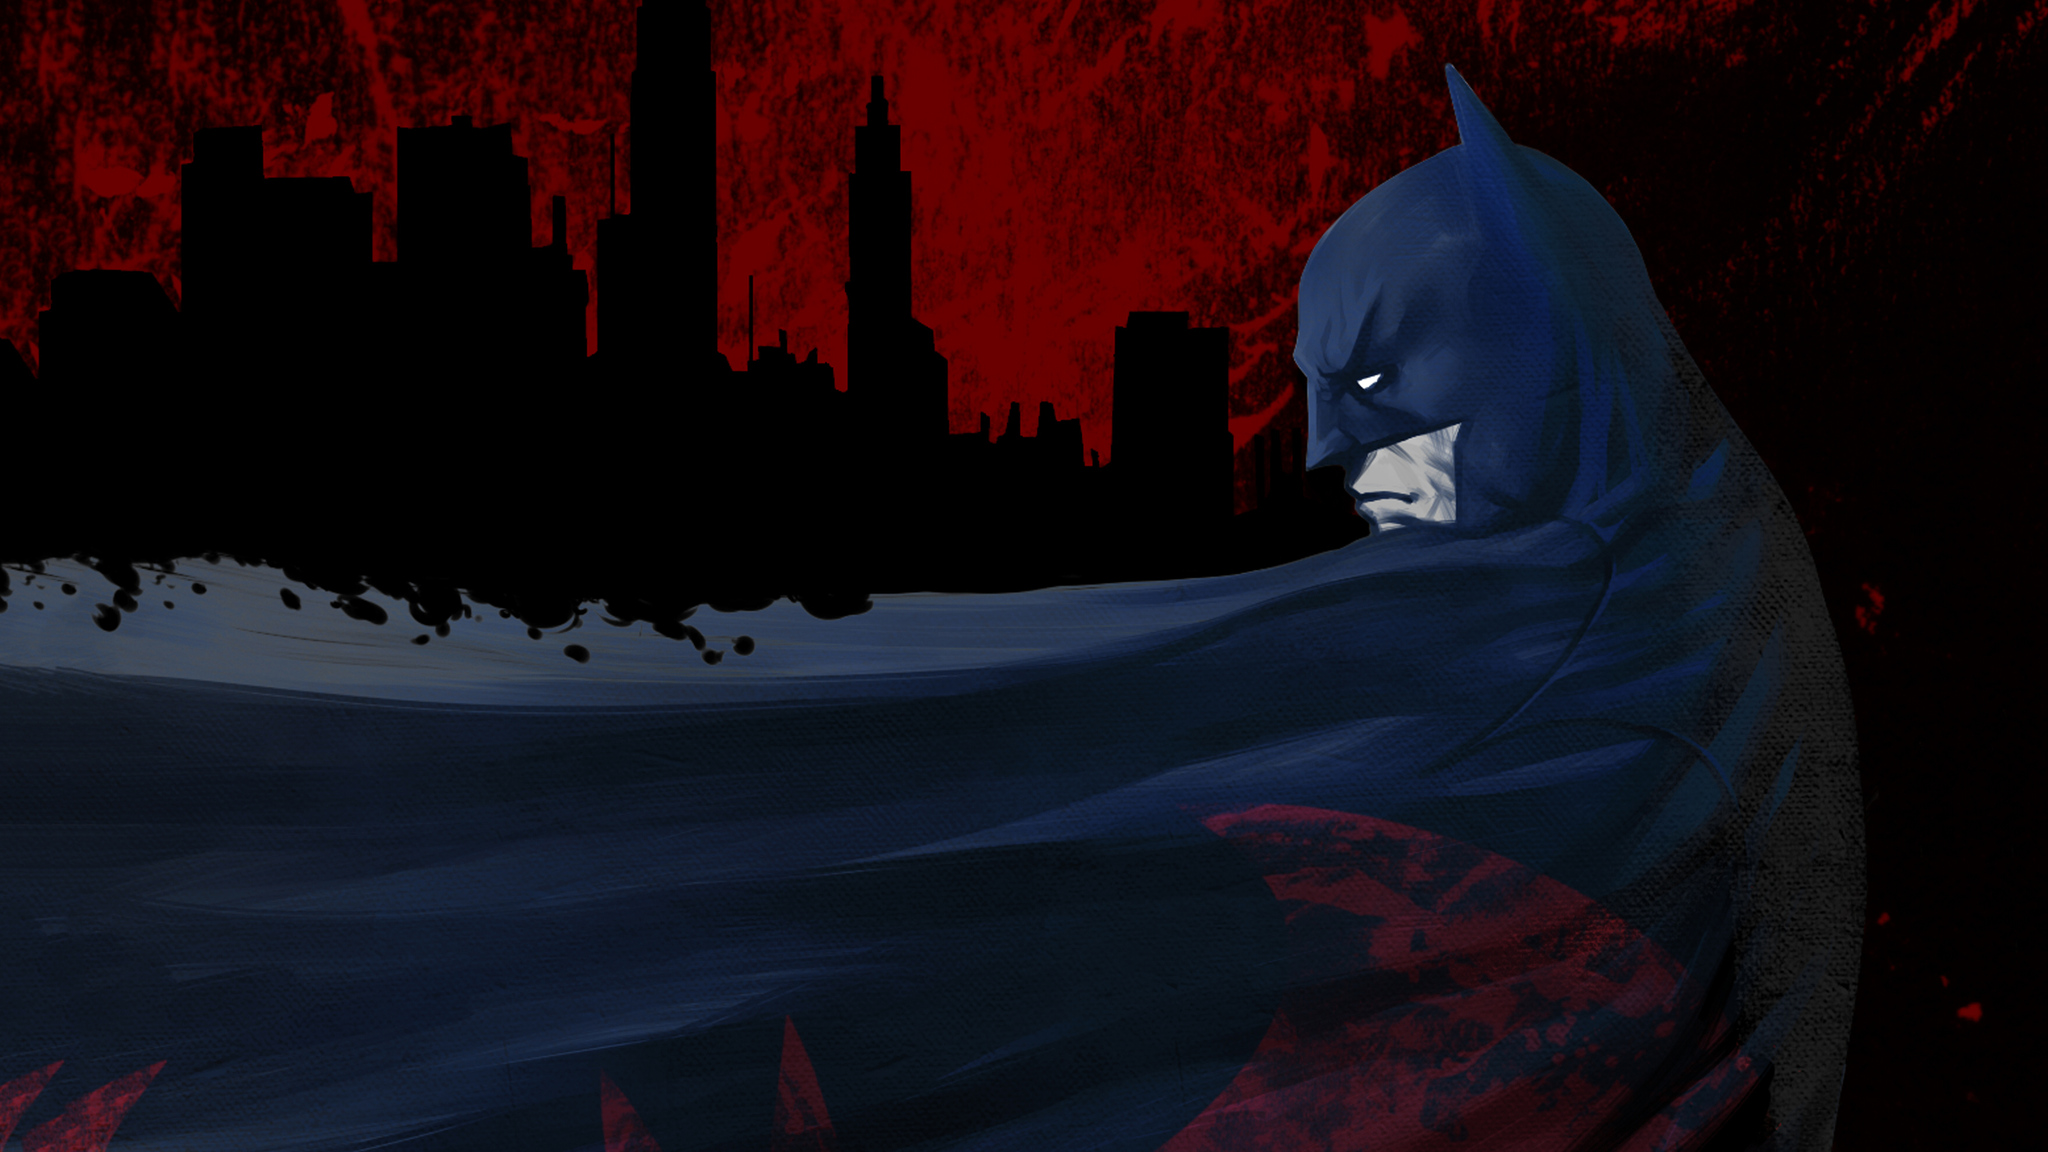 batman-gotham-artwork-ar.jpg